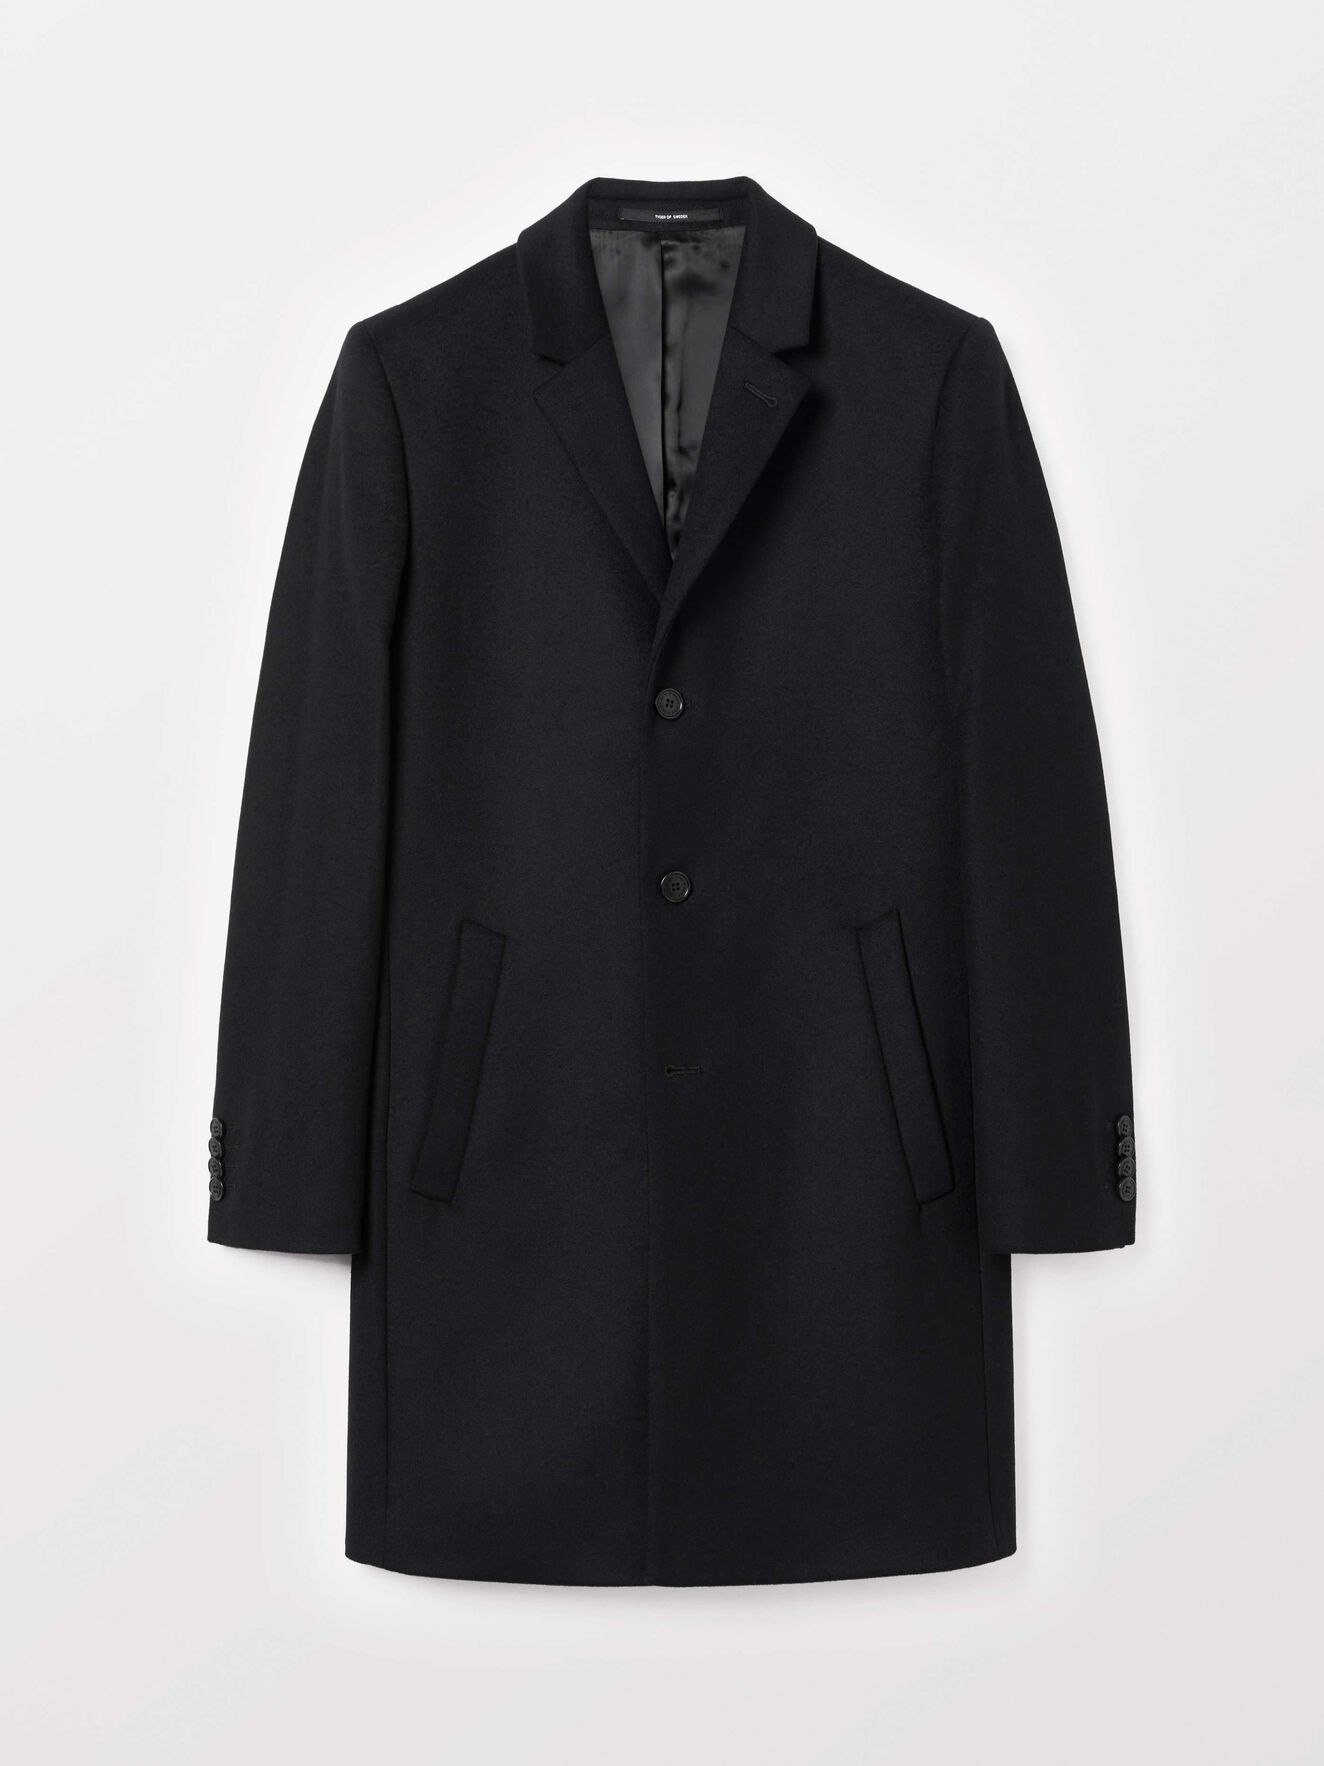 Dempsey Coat in Black from Tiger of Sweden